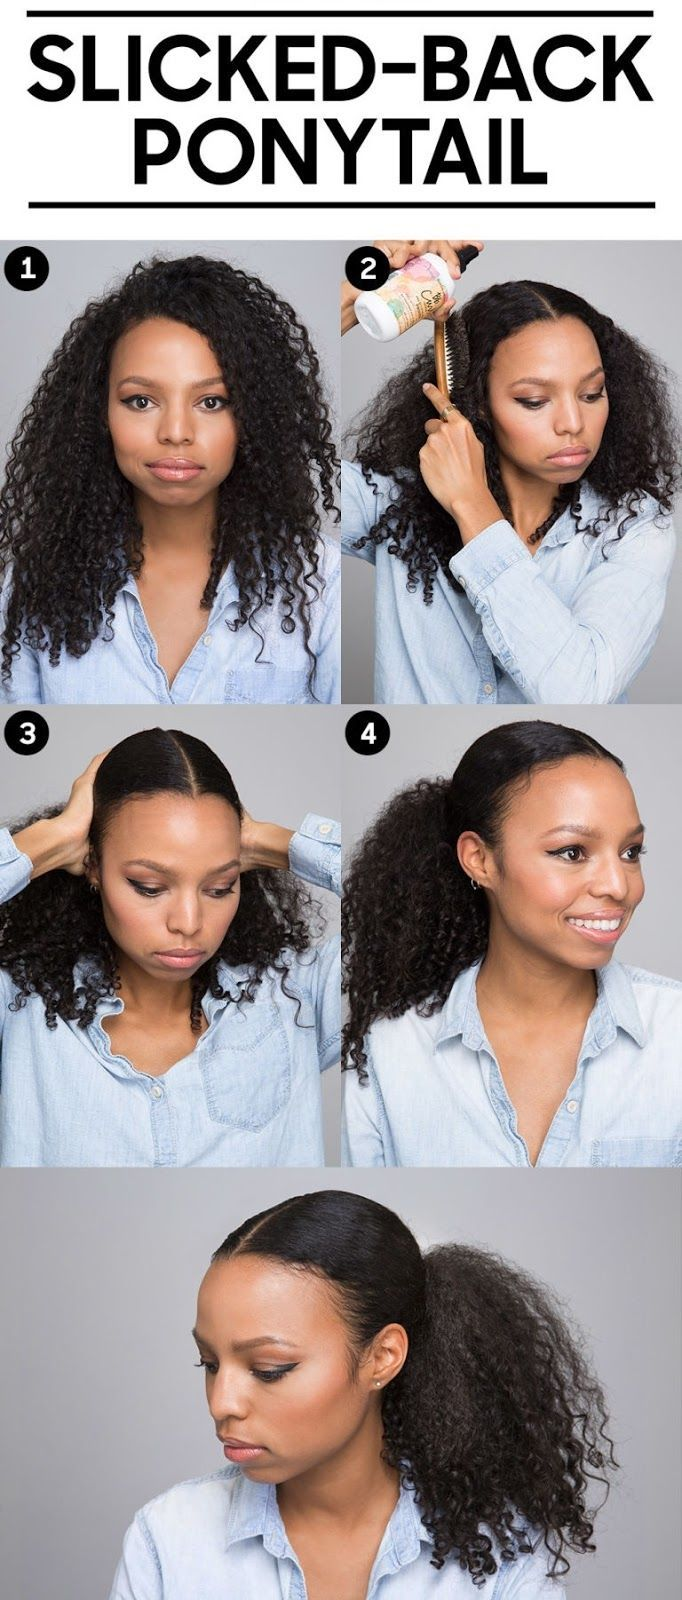 8 Cutest Curly Hairstyles Ideas Curly Hair Styles Naturally Curly Hair Ponytail Curly Hair Styles